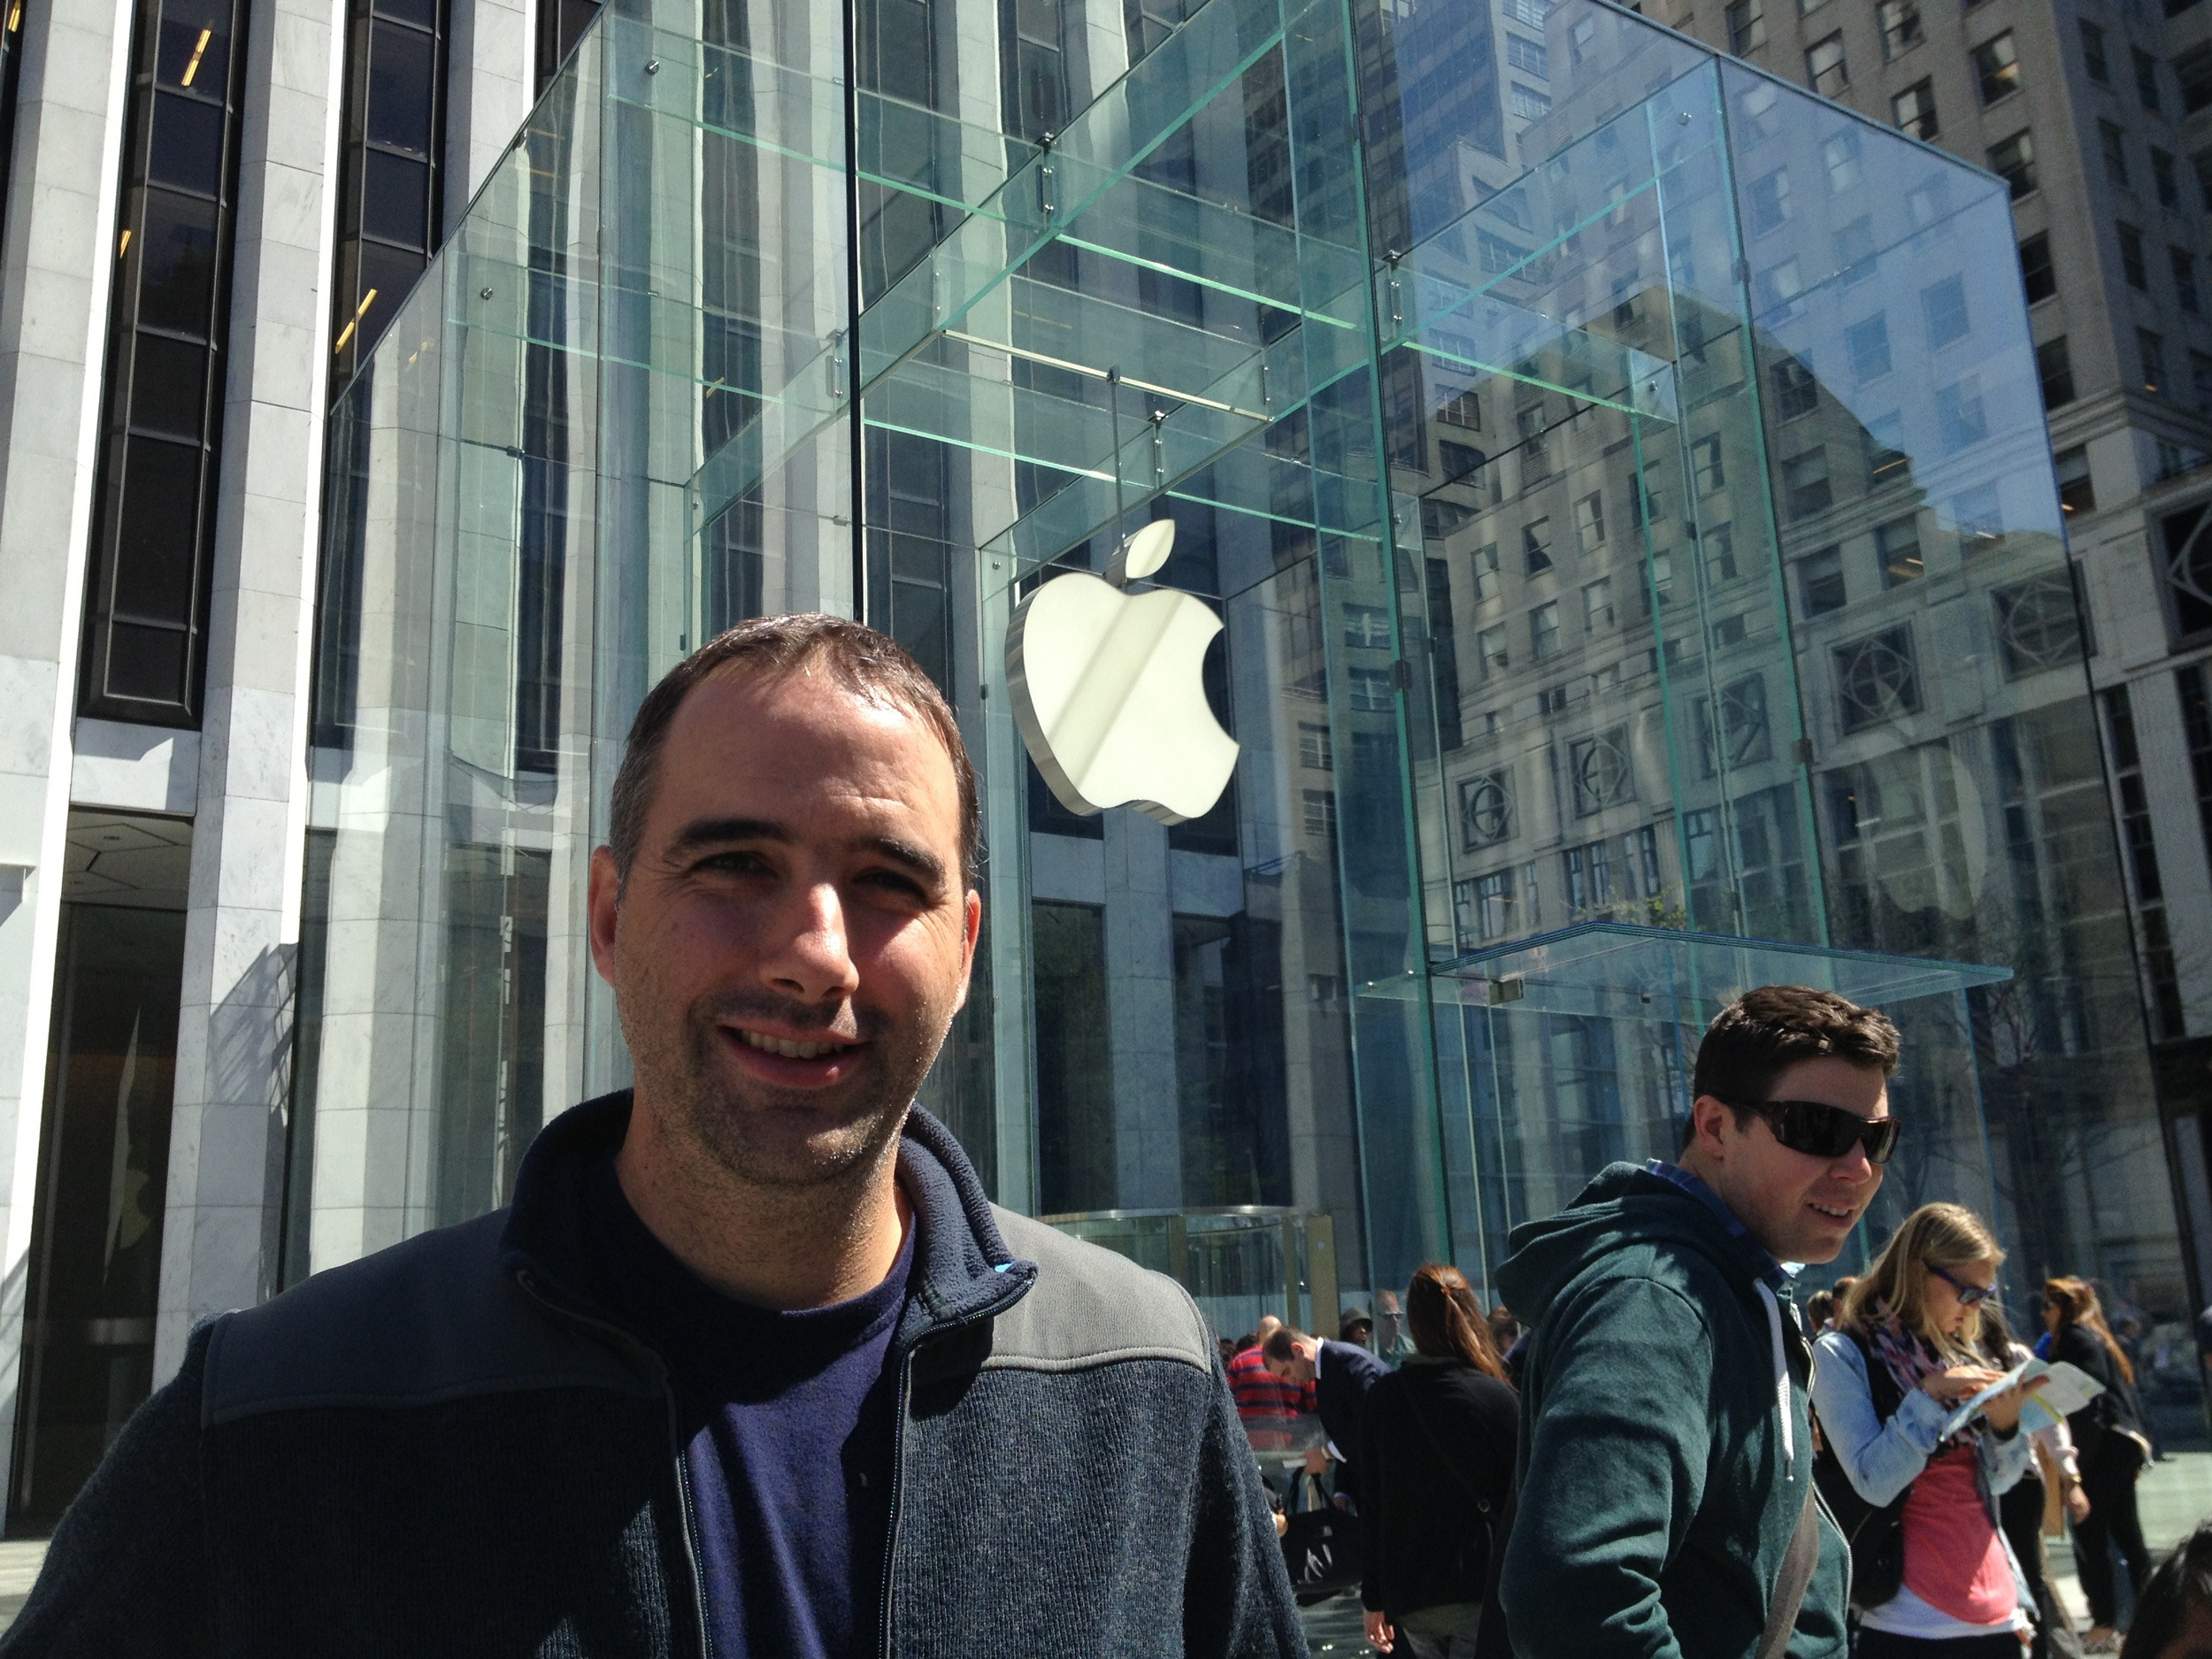 Apple Store, woot!